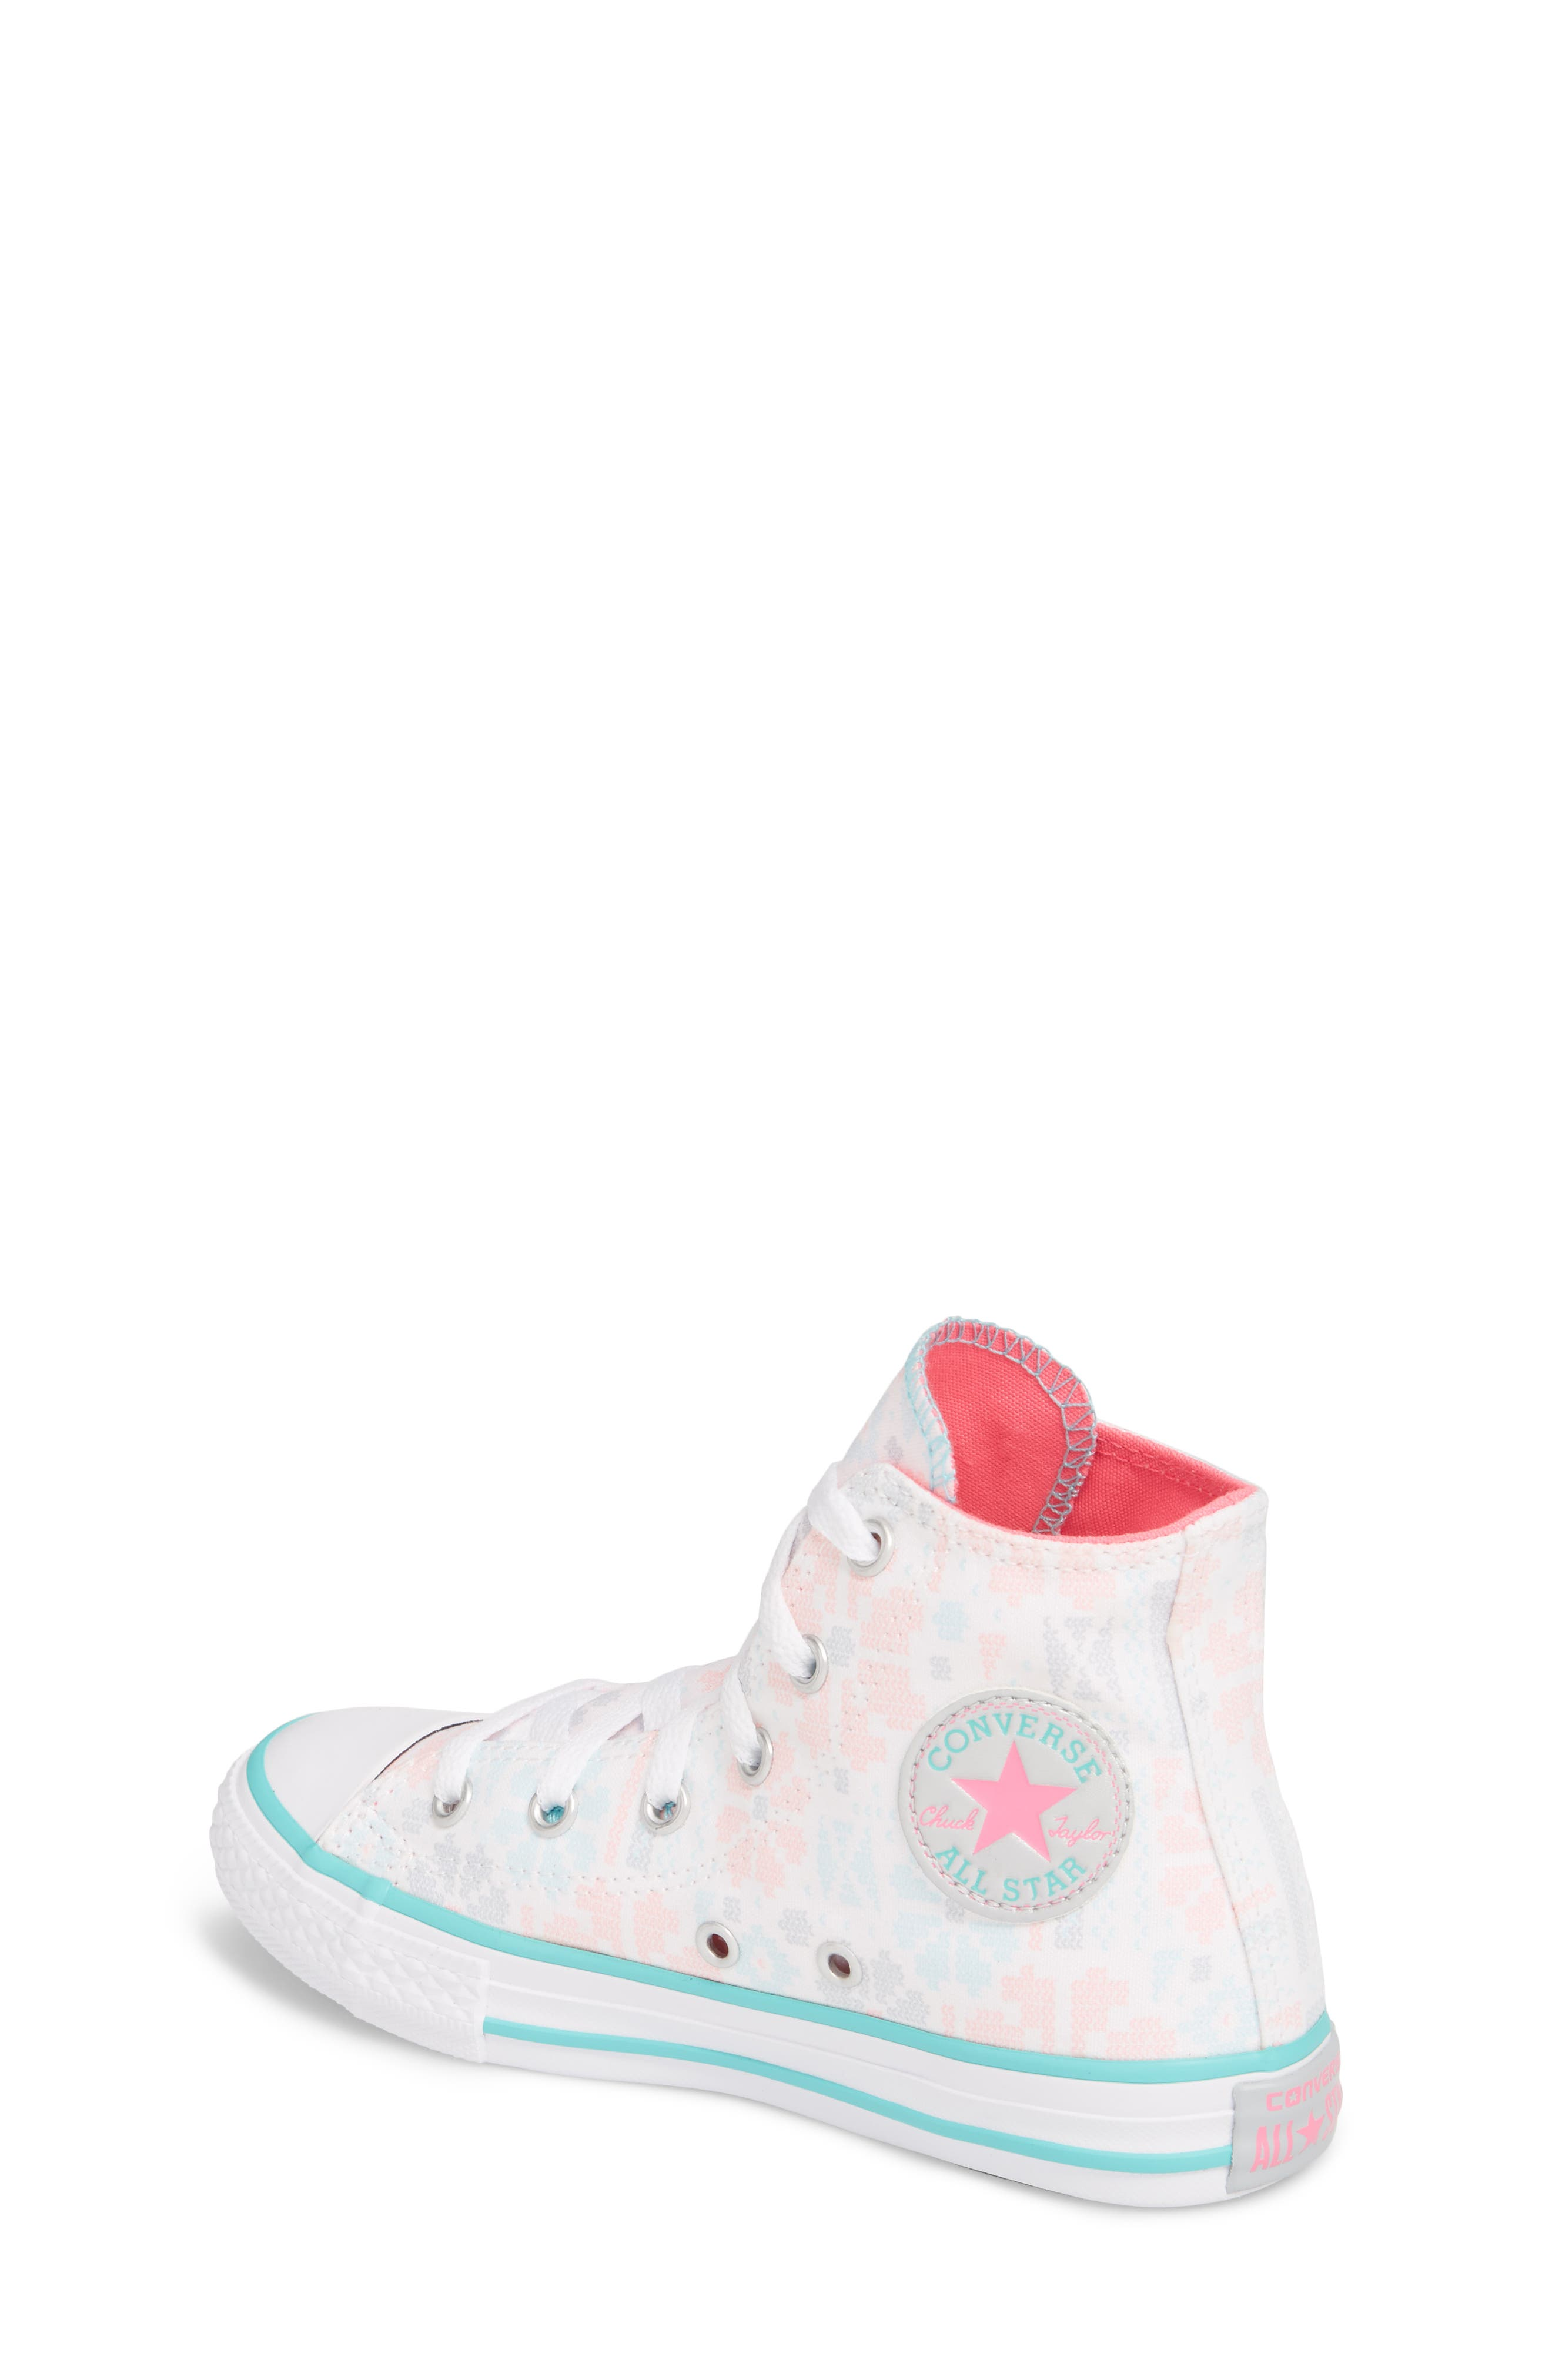 Chuck Taylor<sup>®</sup> All Star<sup>®</sup> High Top Sneaker,                             Alternate thumbnail 2, color,                             White/ Pink Canvas